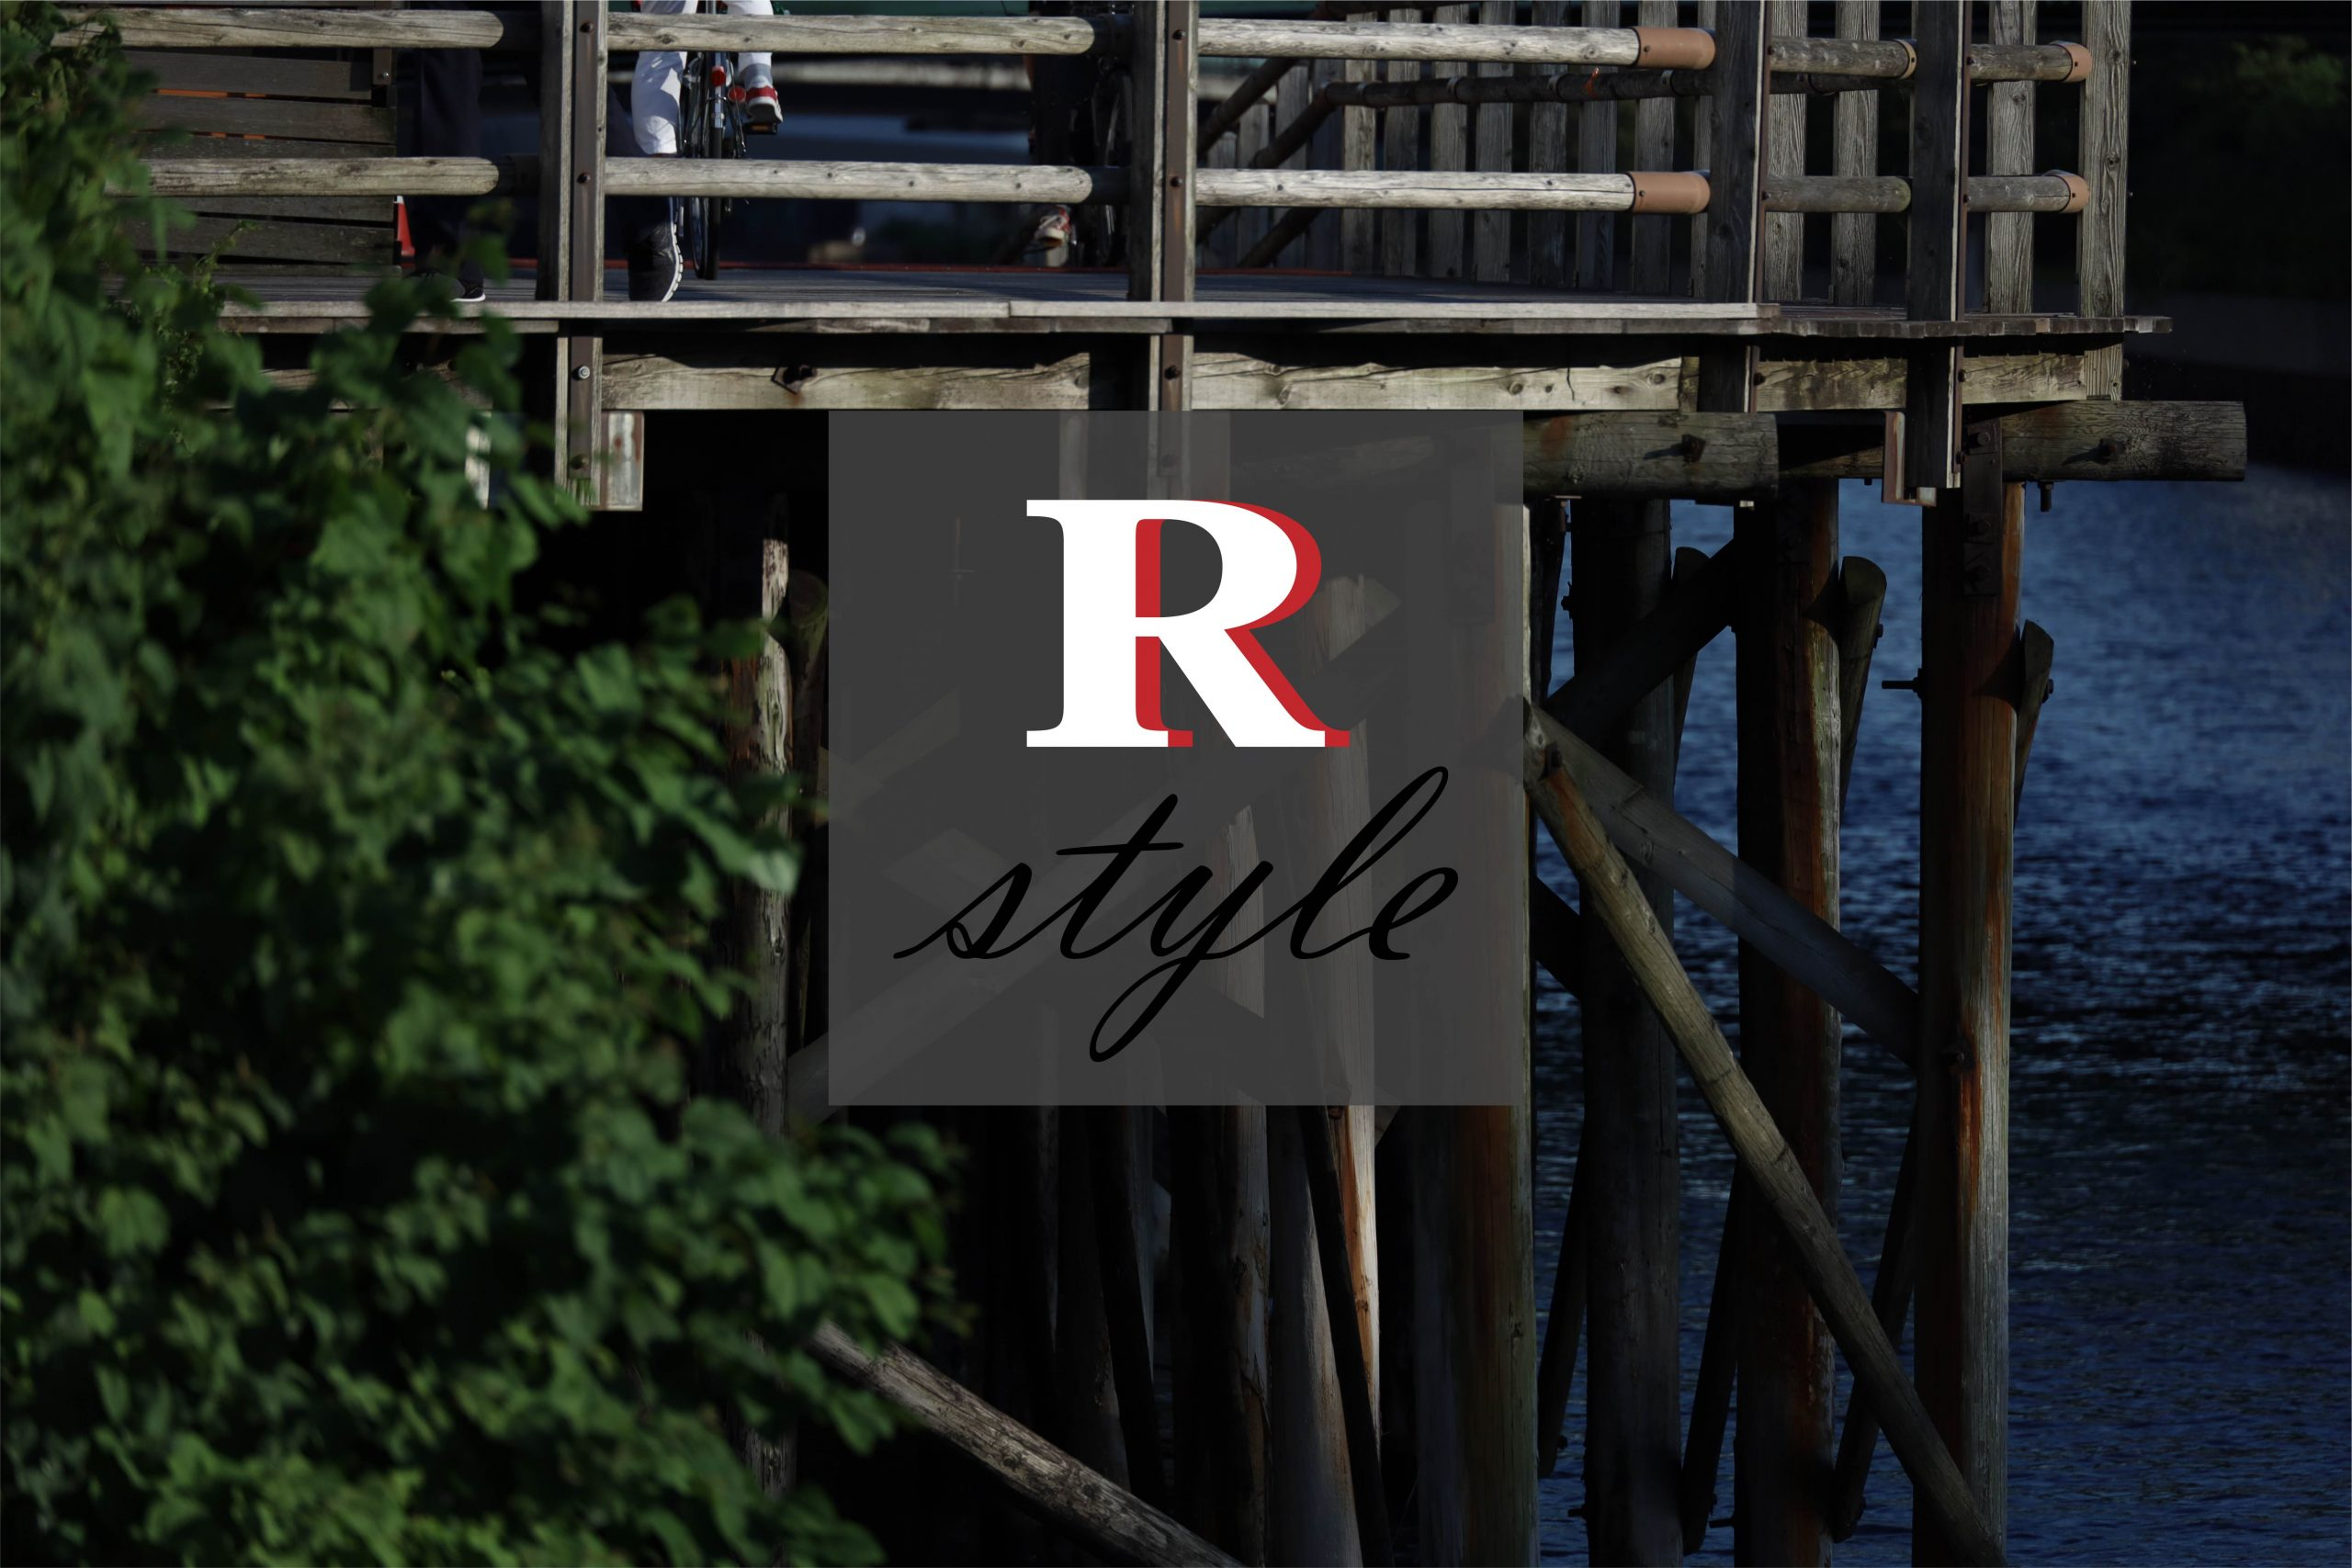 【Canon】 R STYLE ~RF24-240mm F4-6.3 IS USM~